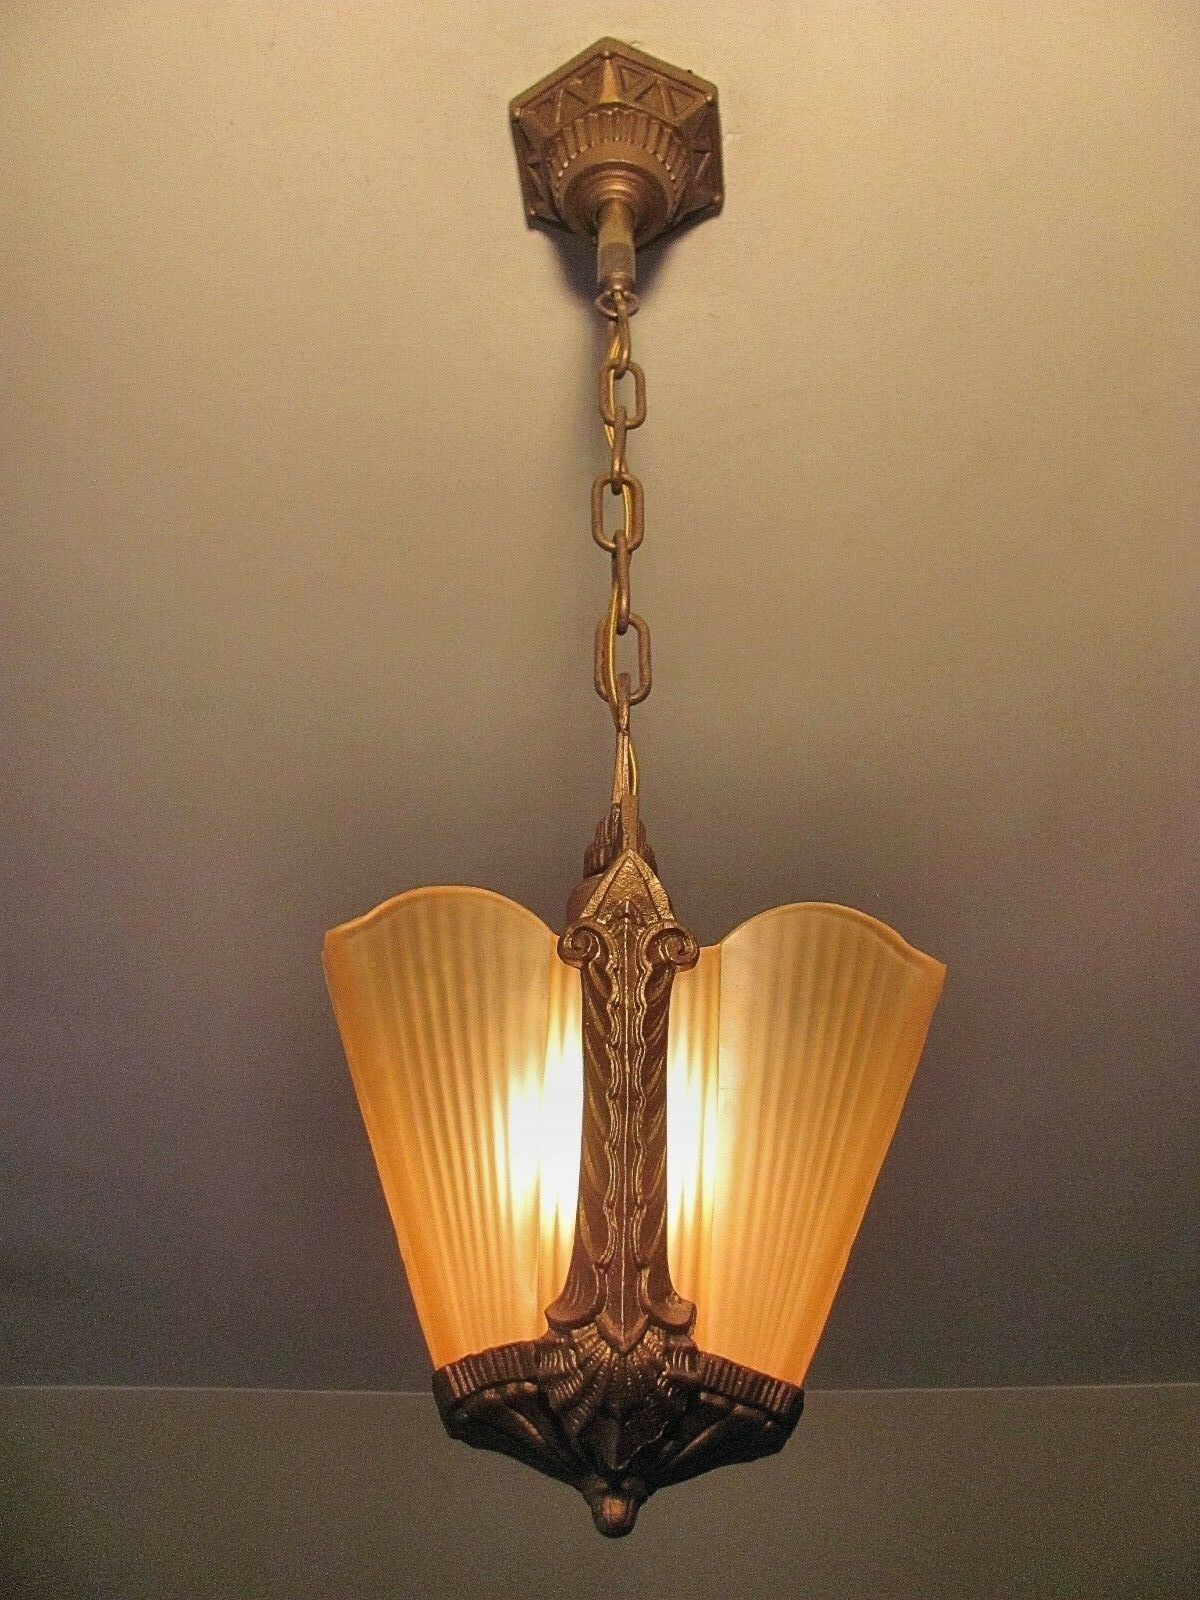 Elegant Antique Slip Shade Light Fixture - Restored and Ready to Install!